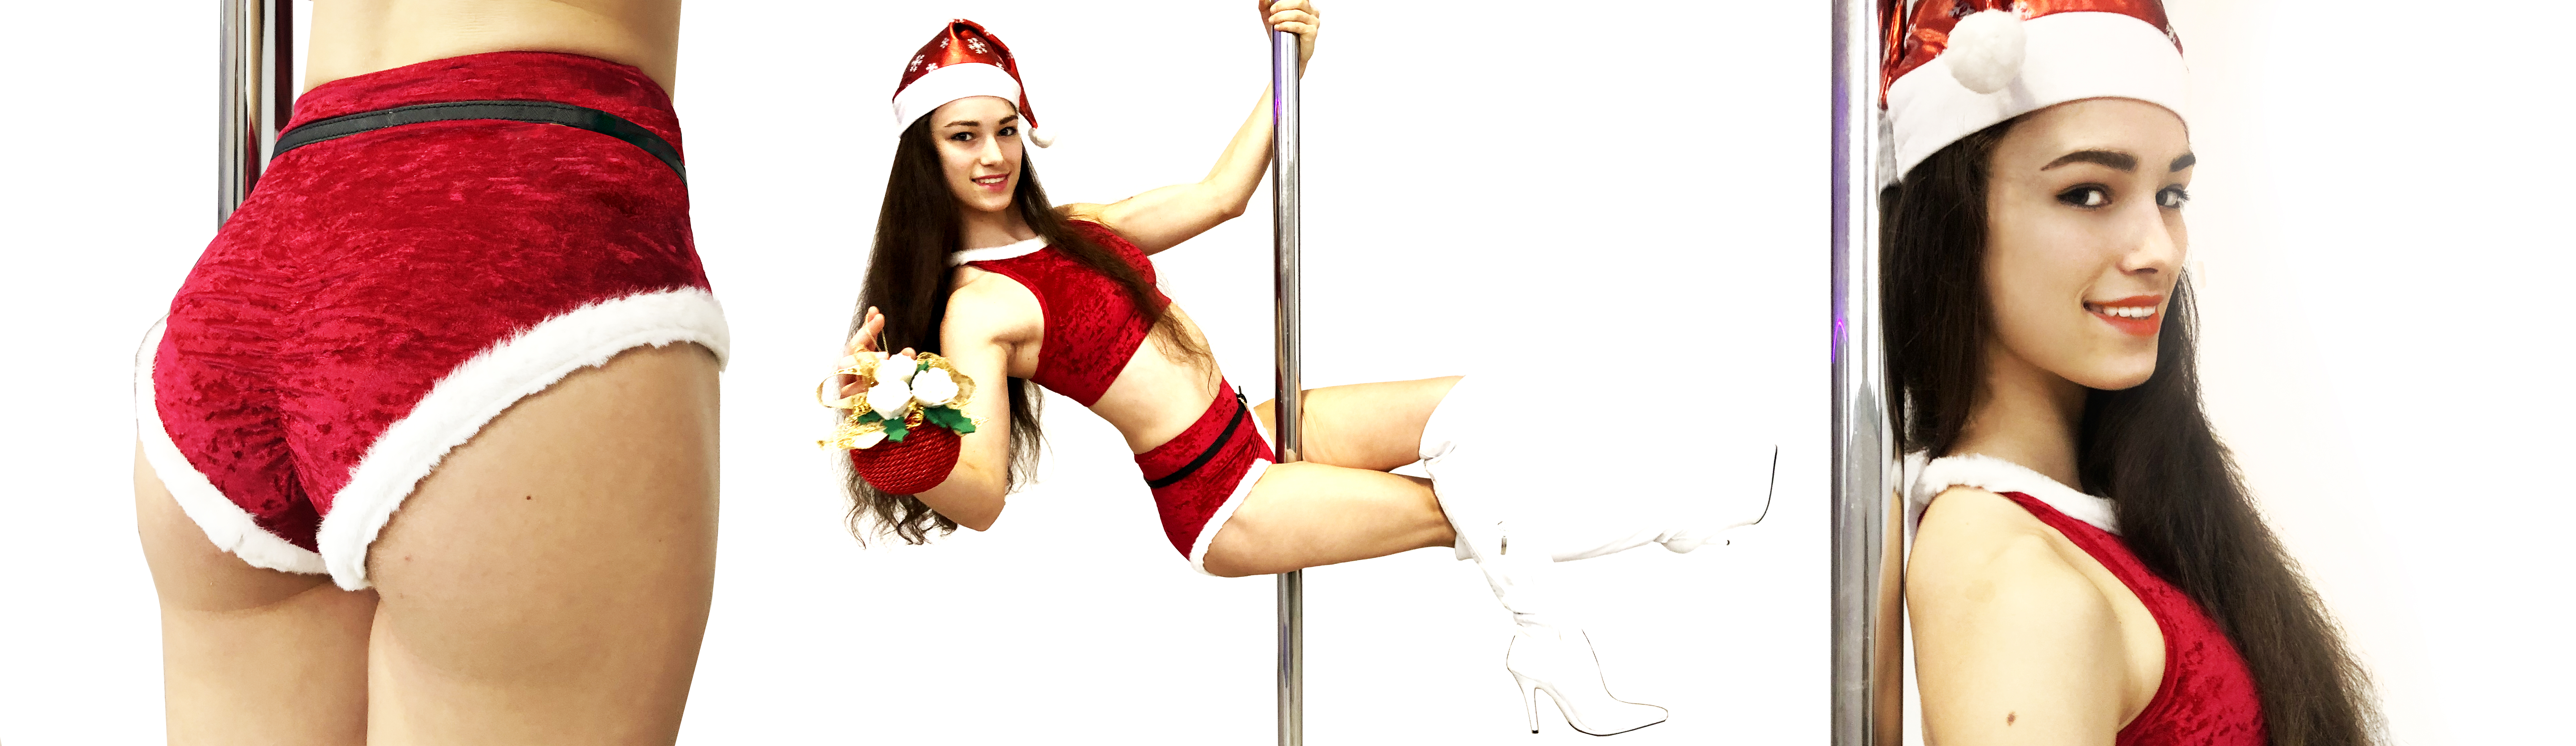 Completino pole dance Natale